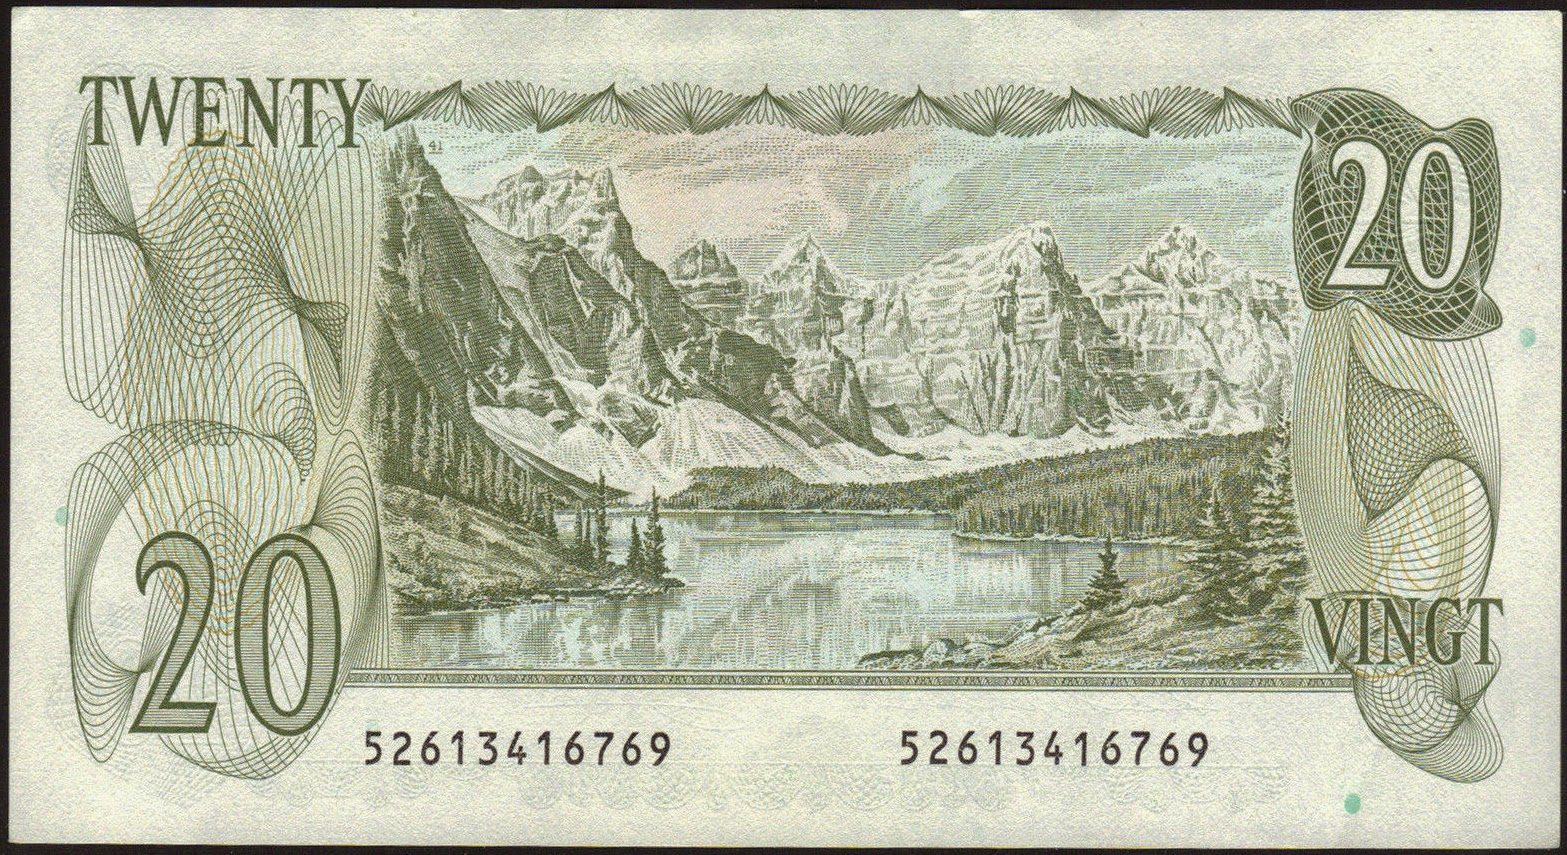 Canada money currency 20 dollar note 1979 moraine lake and the valley